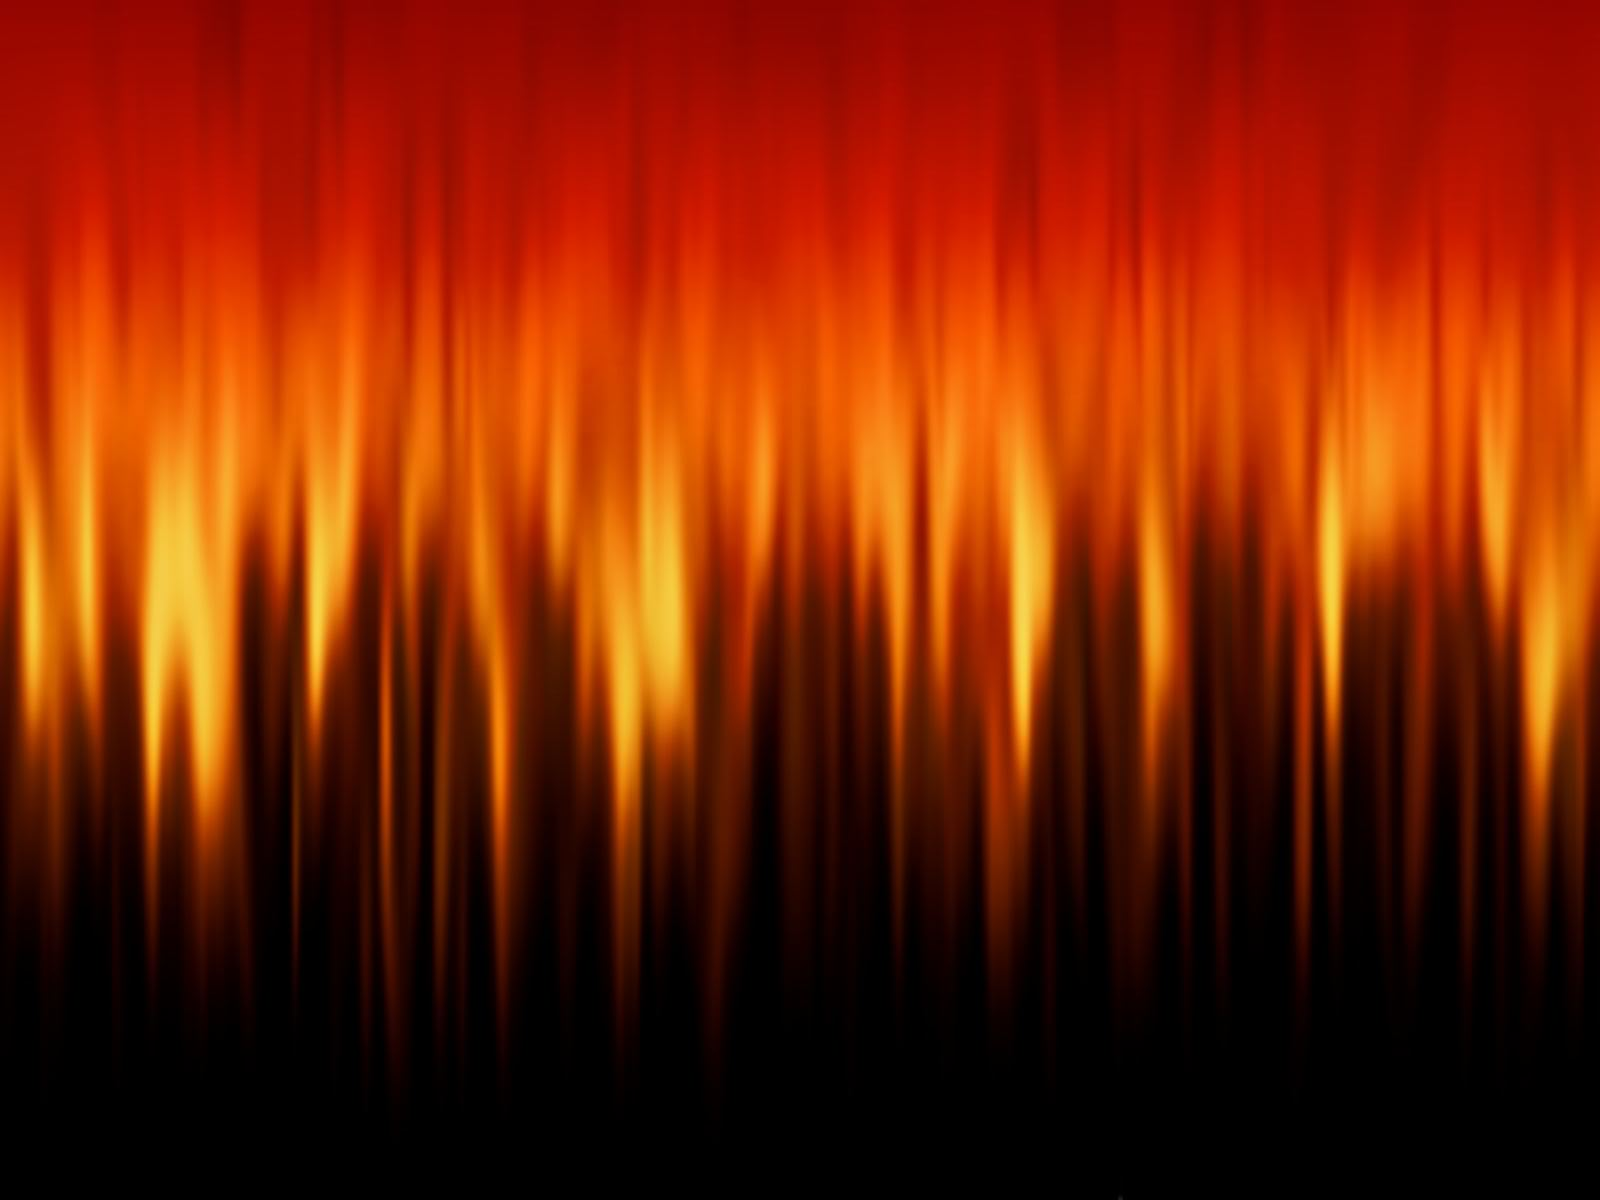 Backgrounds i fiery flames flaming hot tongue glowing blazing 1600x1200 voltagebd Gallery